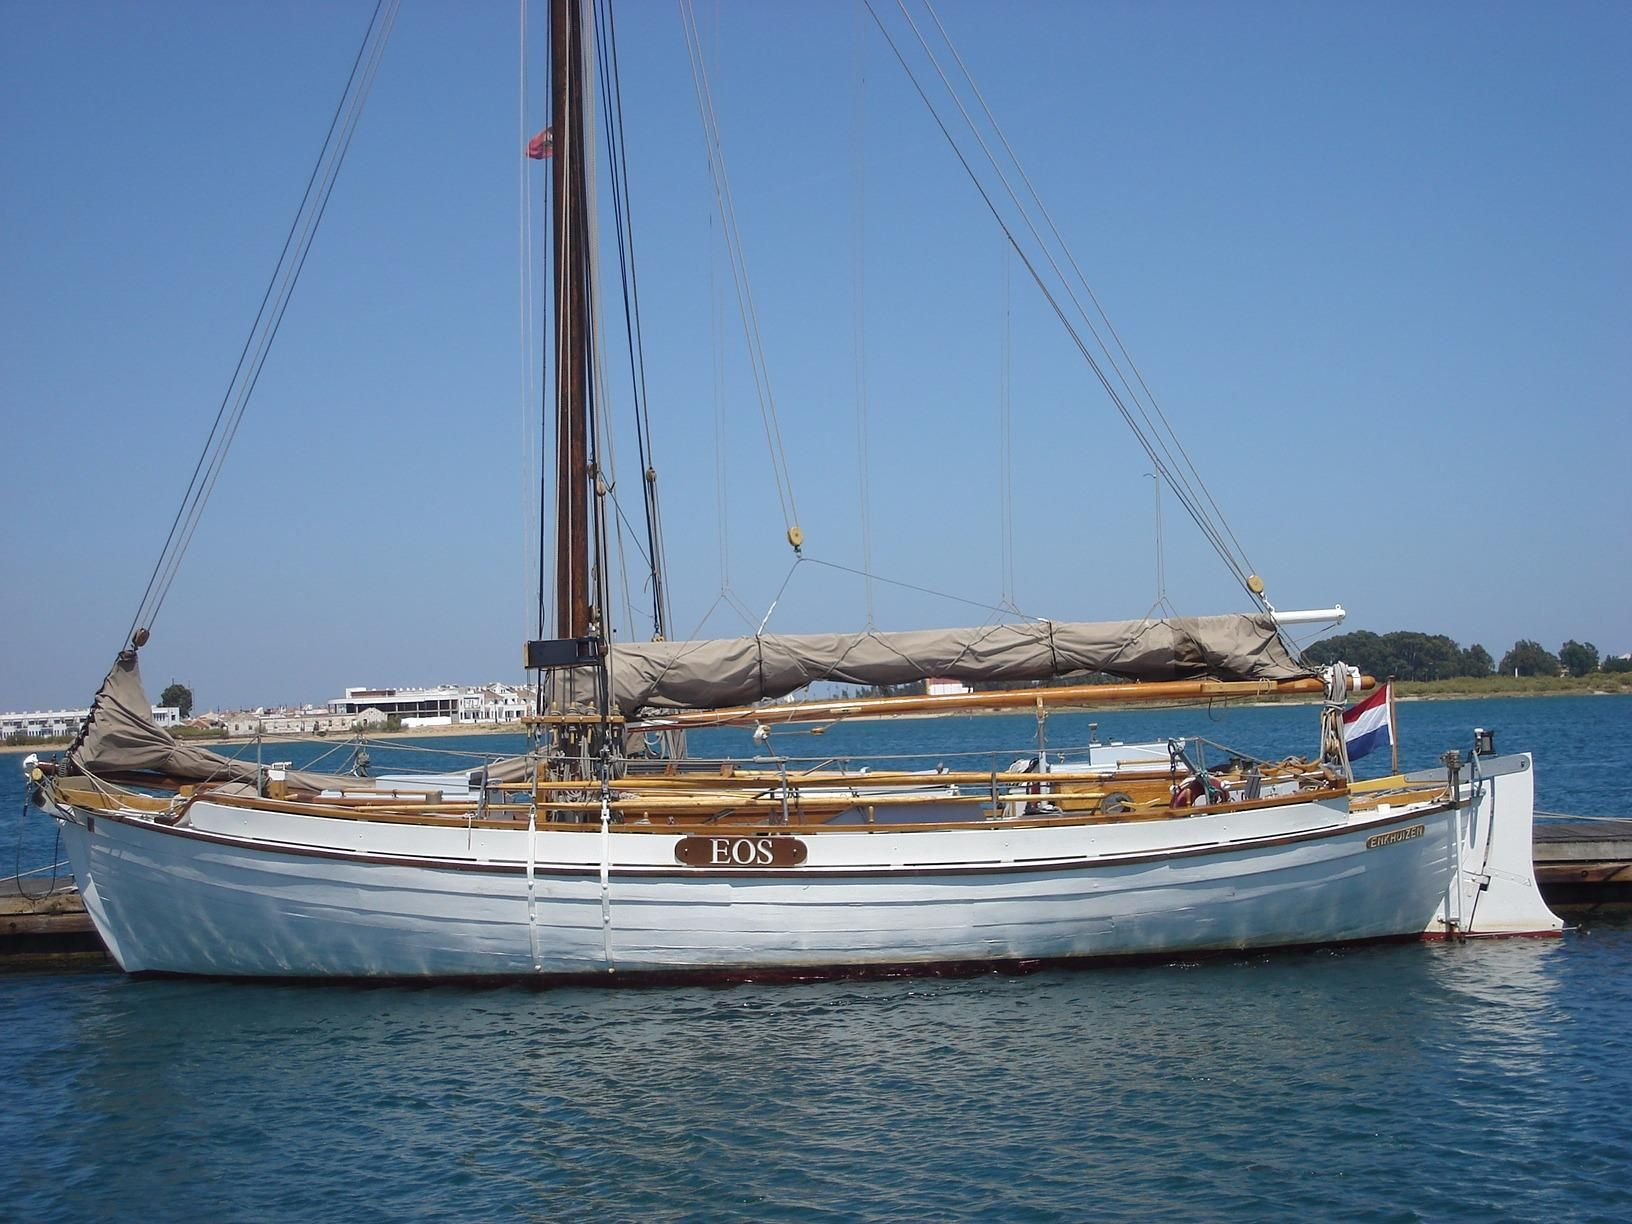 1932 Colin Archer Type Gaff cutter Sail Boat For Sale ...